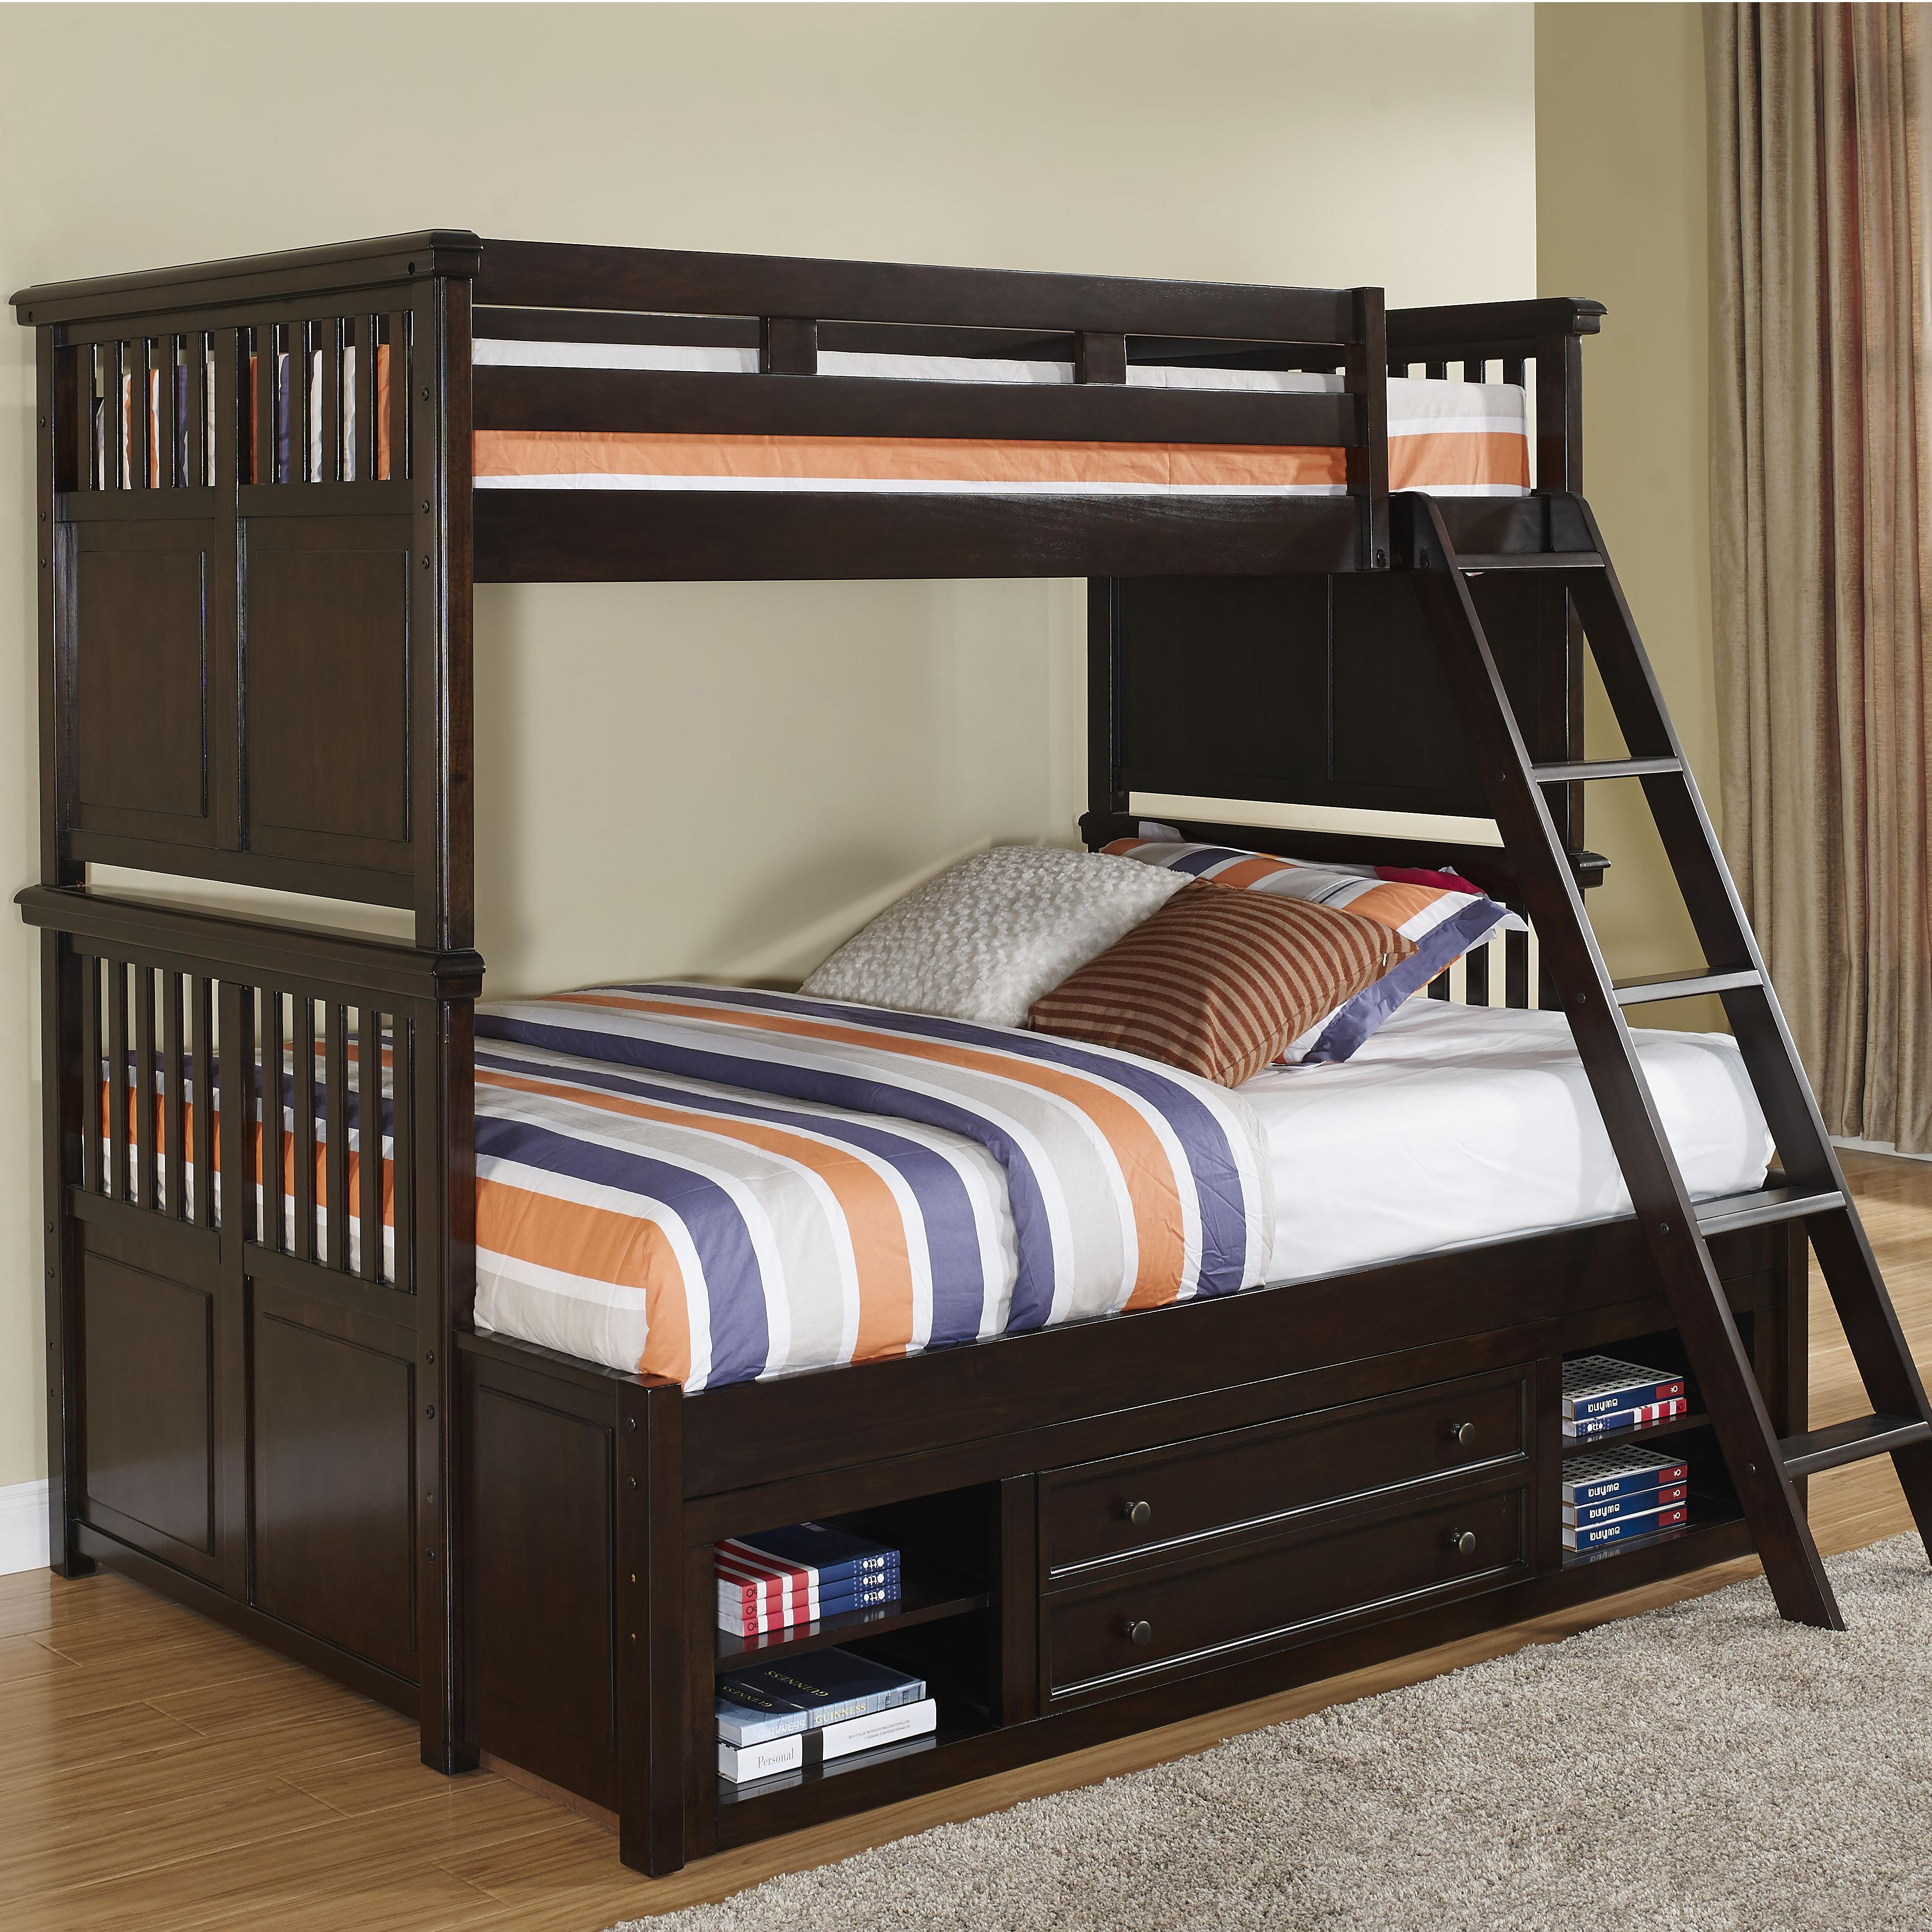 New Classic Canyon Ridge Twin/Full Bunk Bed with Storage - Item Number: 05-230-518+538+438+598